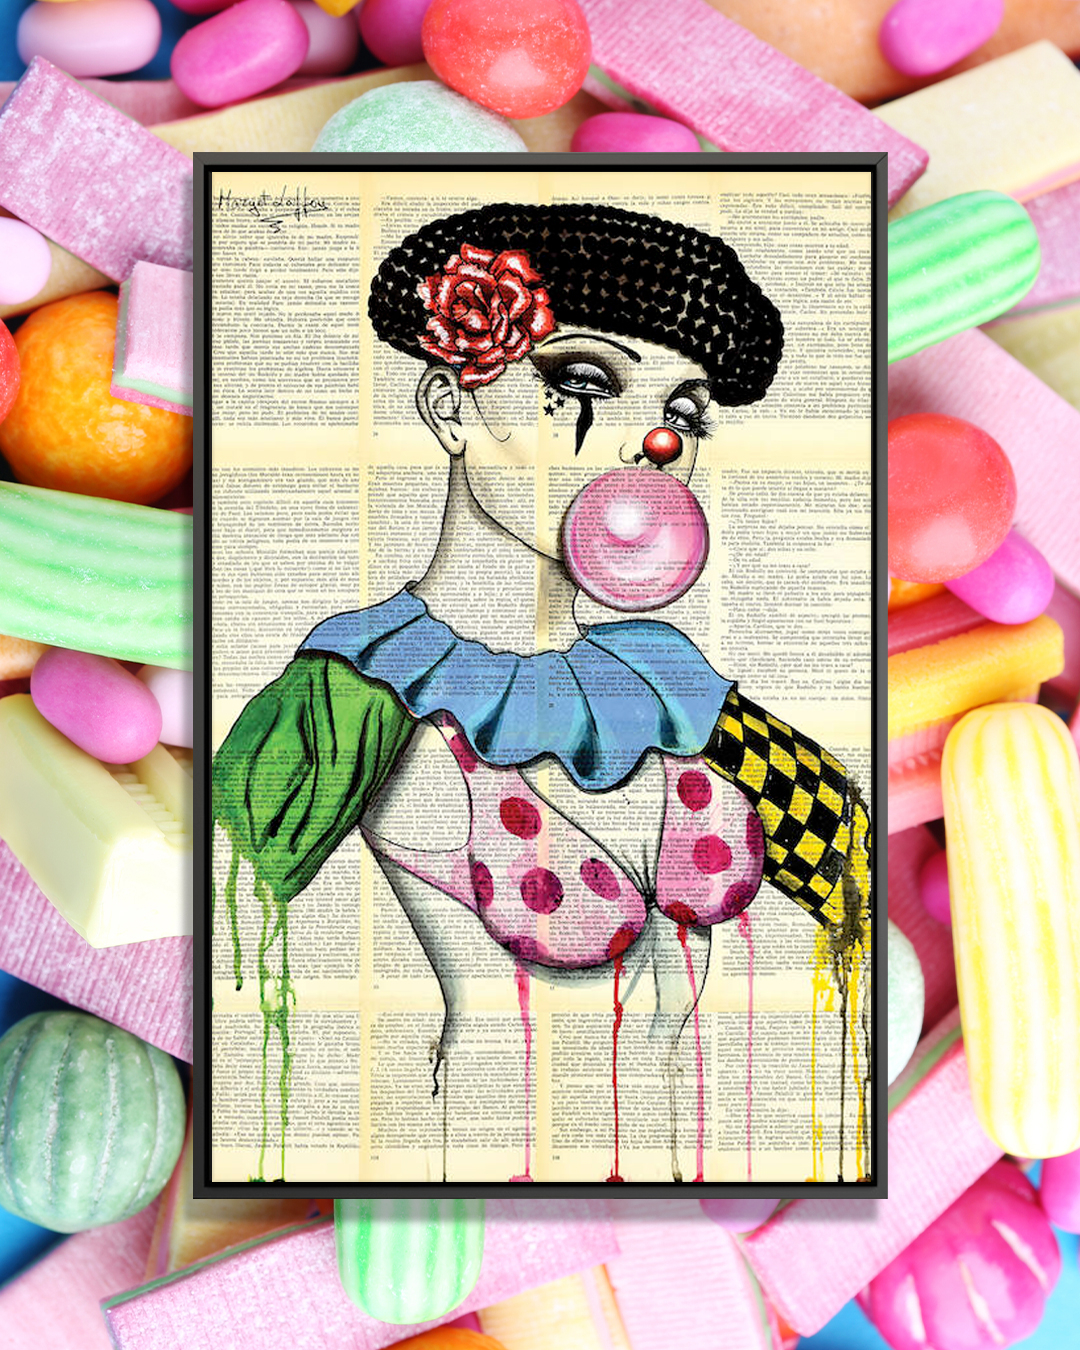 """Clown Woman Bubble Gum"" by Margot Laffon shows a woman wearing a black beret and clown attire while blowing a piece of pink bubblegum."